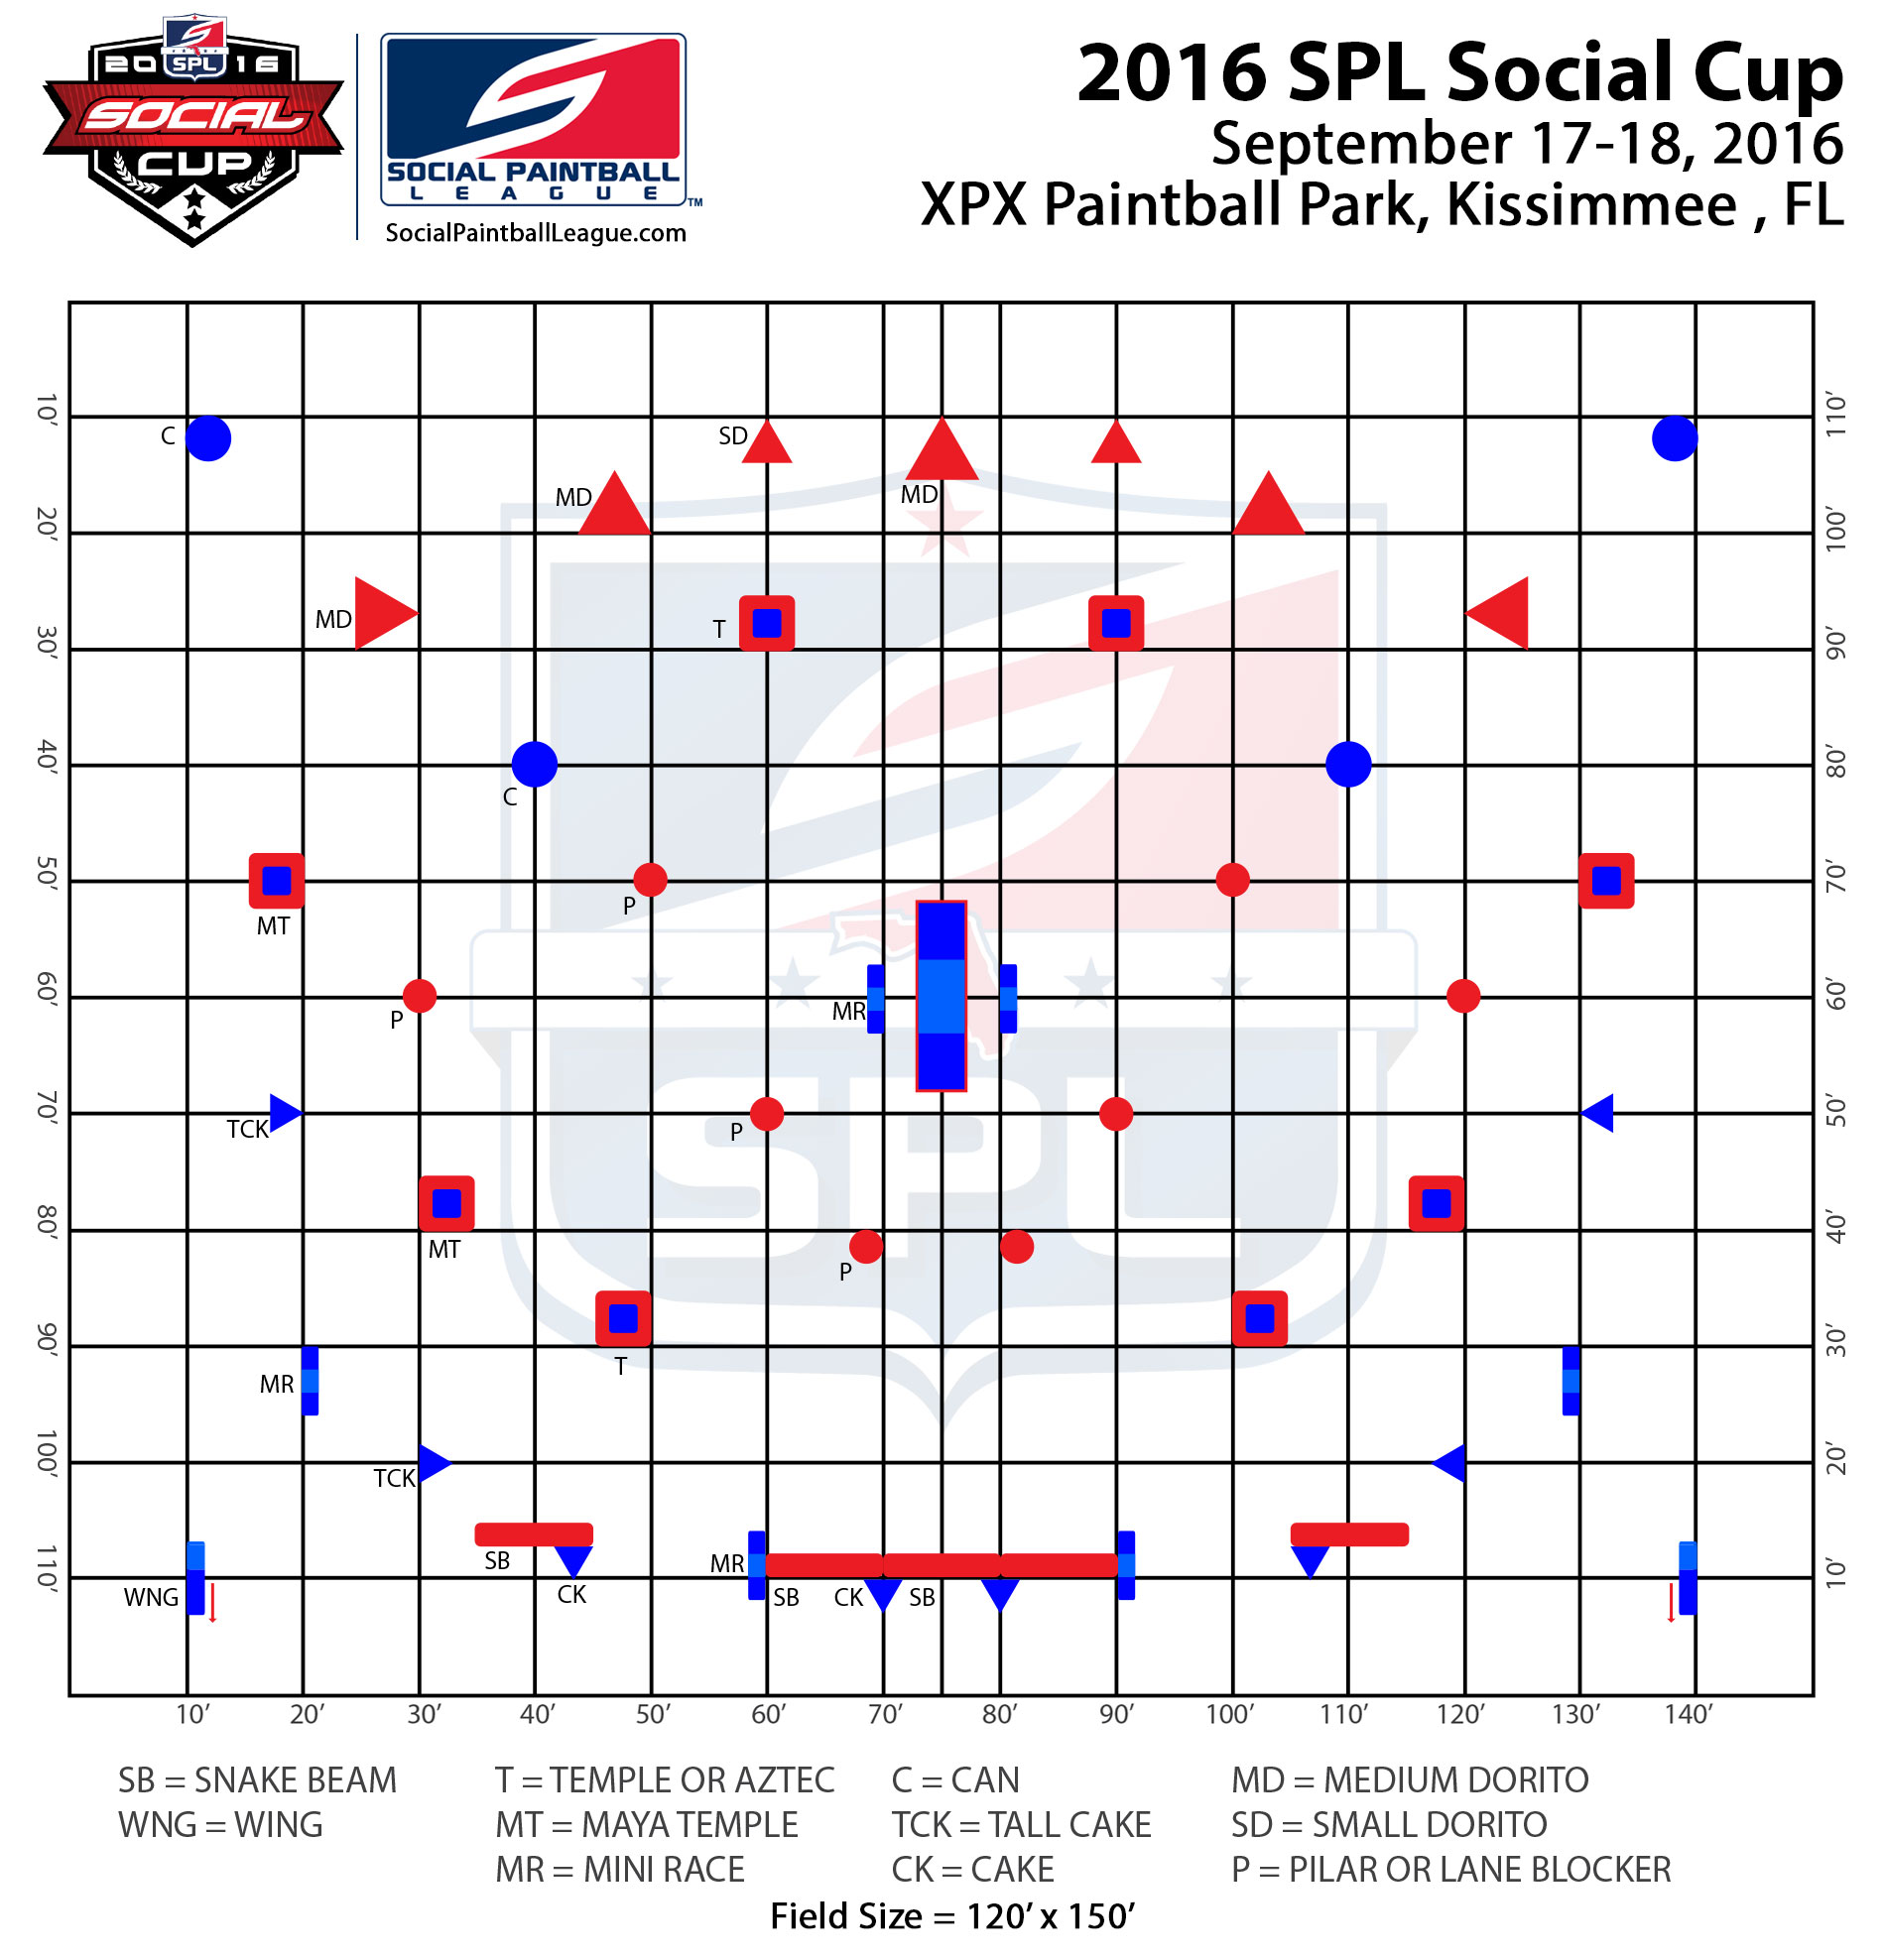 2016 SPL Social Cup layout